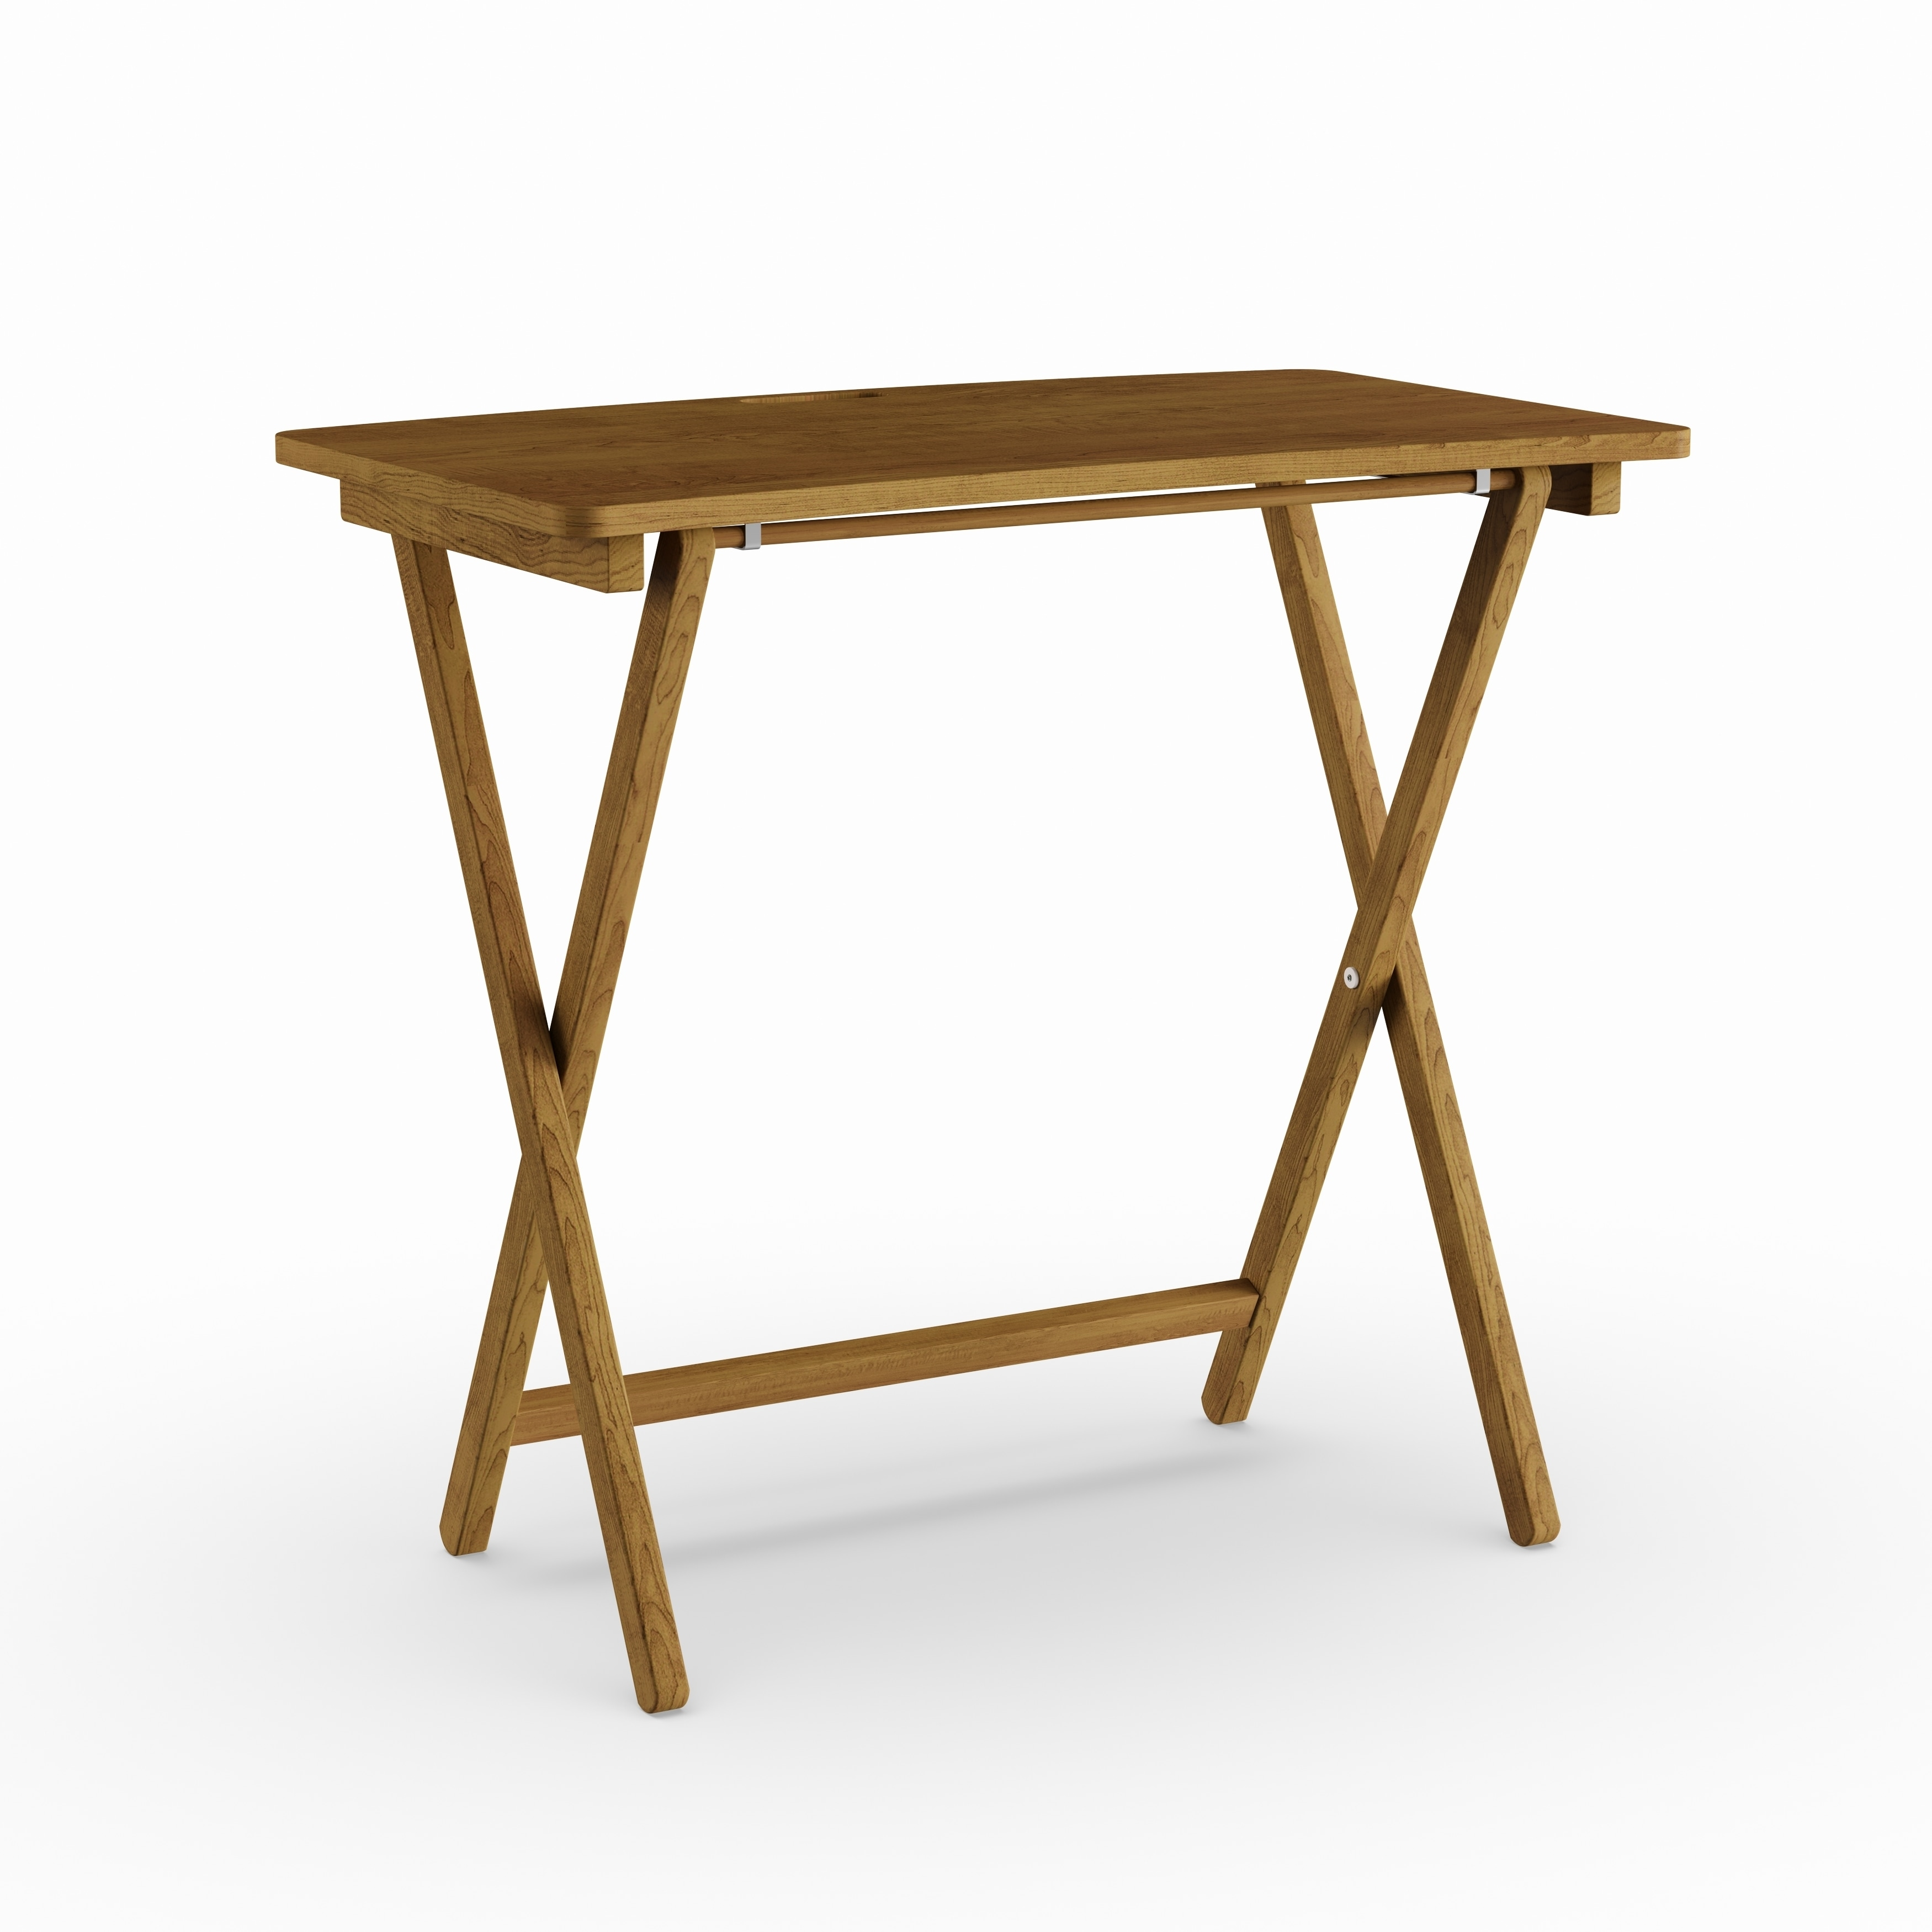 - Shop Copper Grove Goosefoot Red Oak Folding TV Tray Table